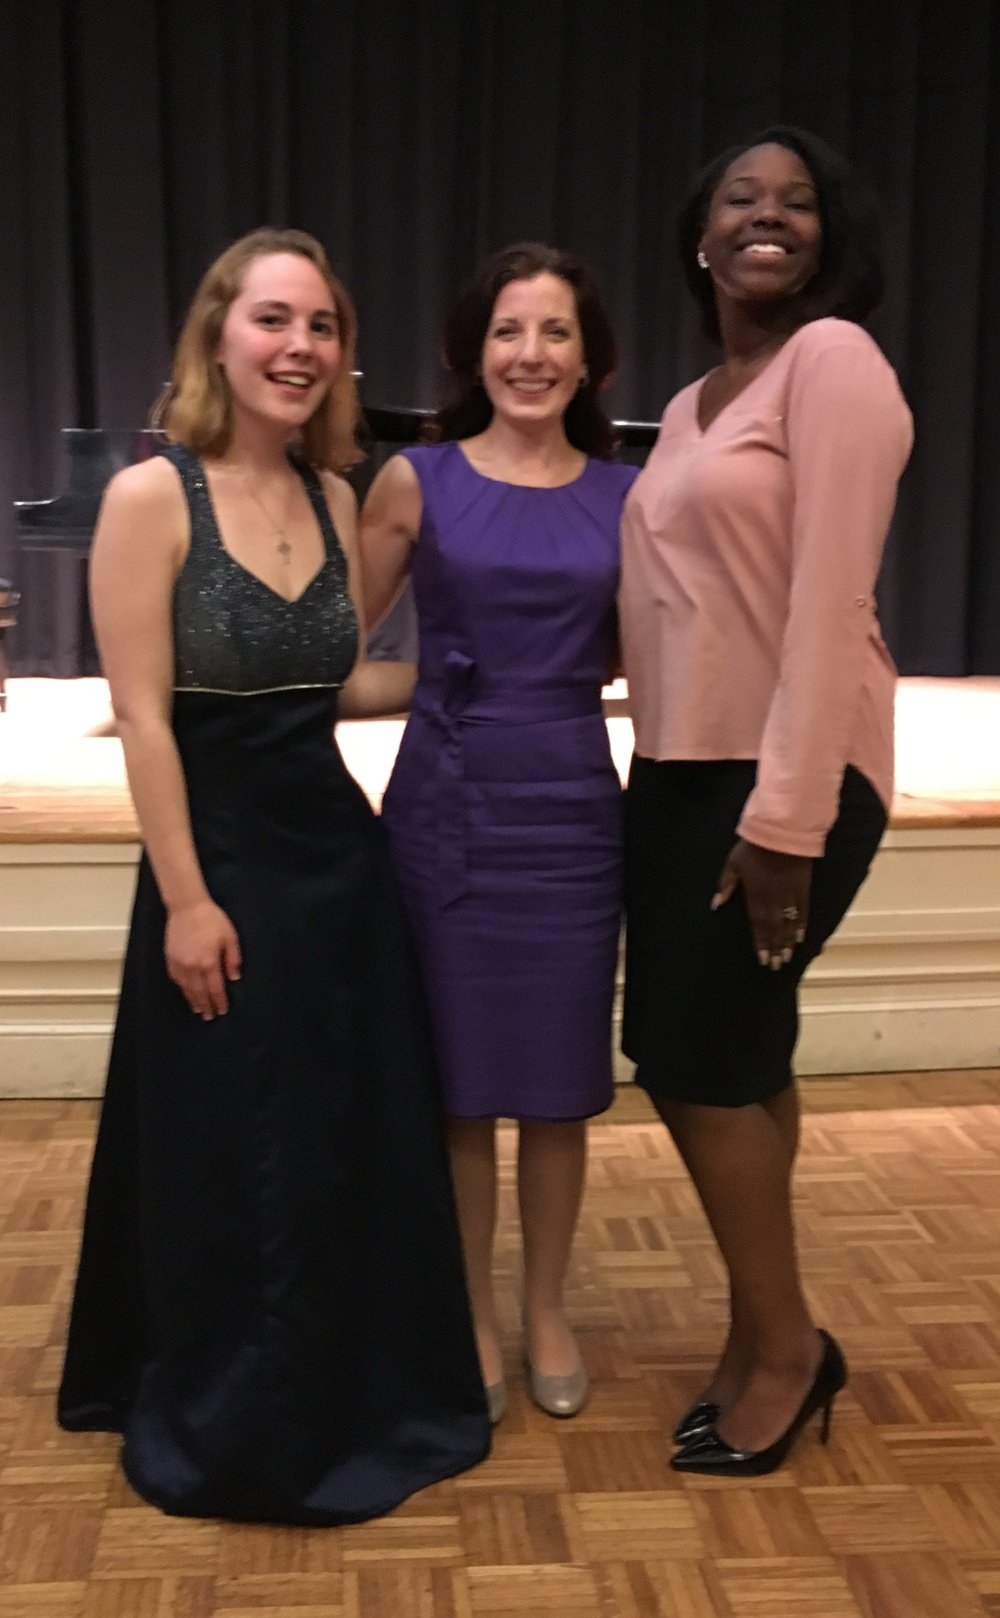 After the Handel & Haydn Vocal Apprentice Spring Concert with graduating senior voice students Johanna Geremia and Jayne Veillard in NEC's Williams Hall